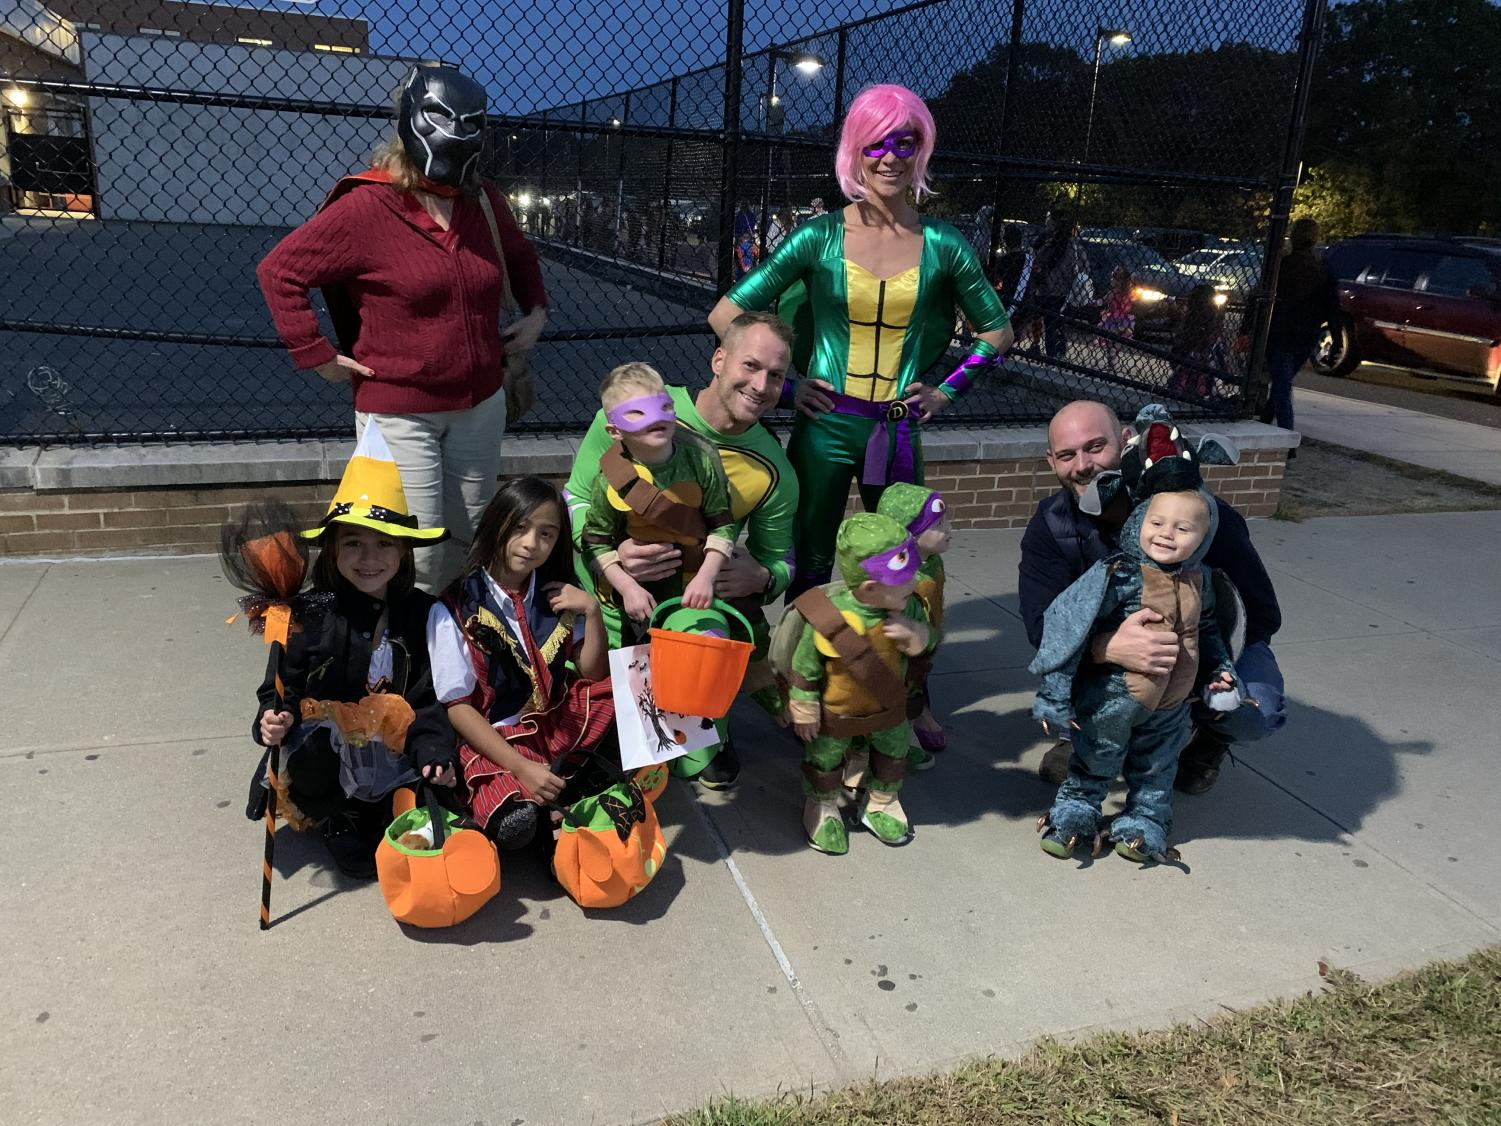 Kids were so excited to get some practice for trick or treating in preparation for the BIG day. PMHS clubs and students helped make the night extra special.